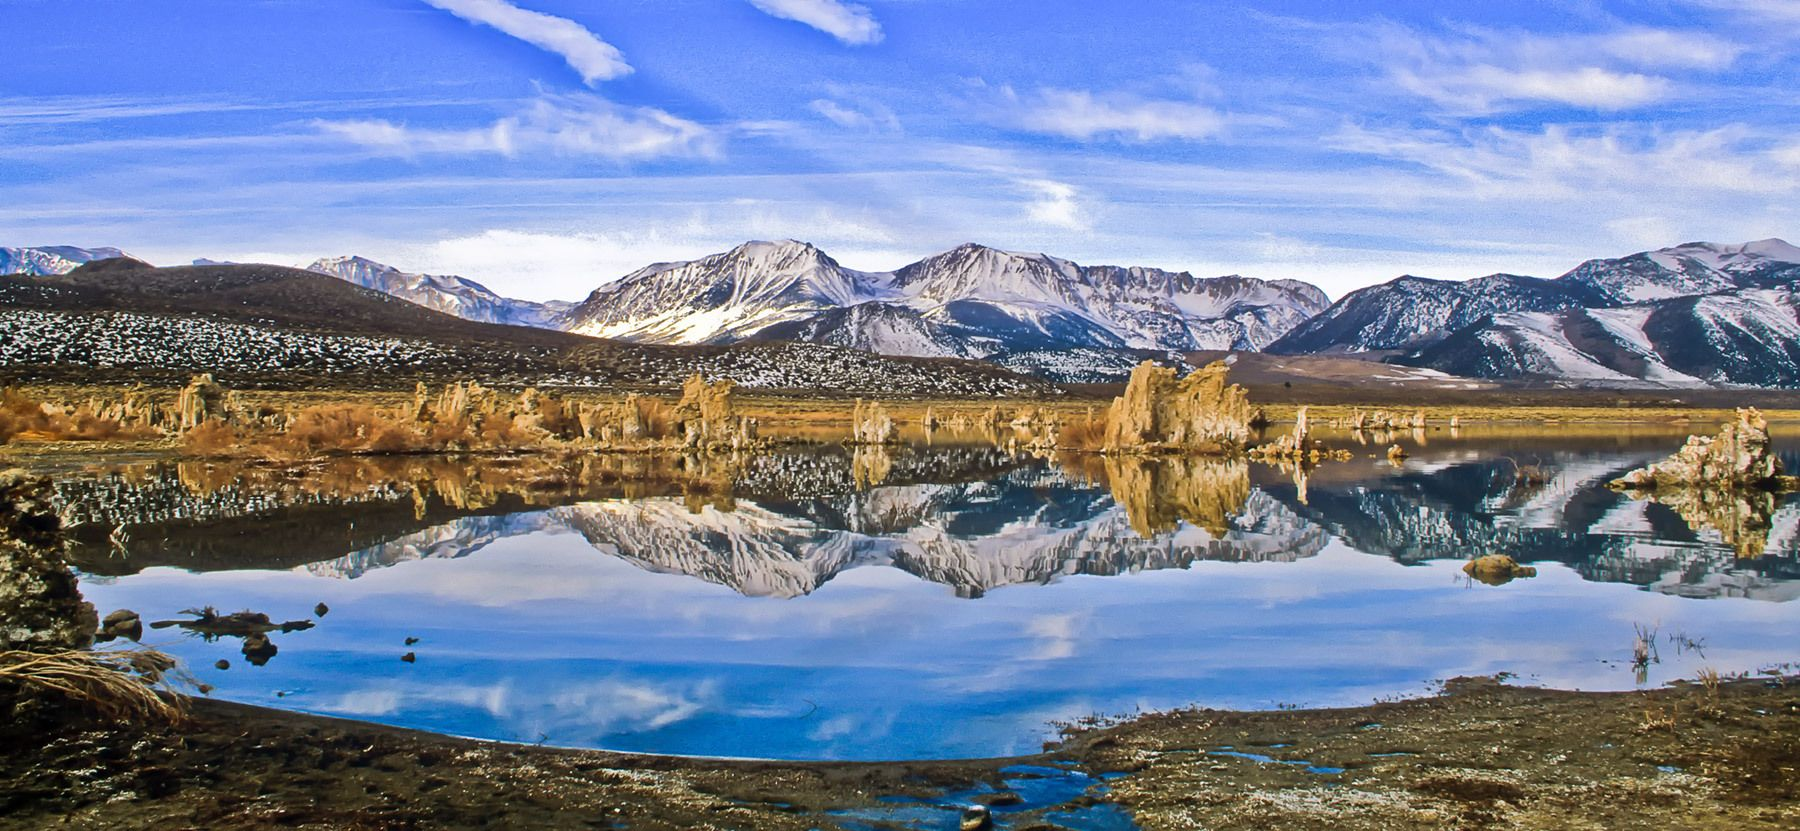 Mono Lake Reflection, Lee Vining, California